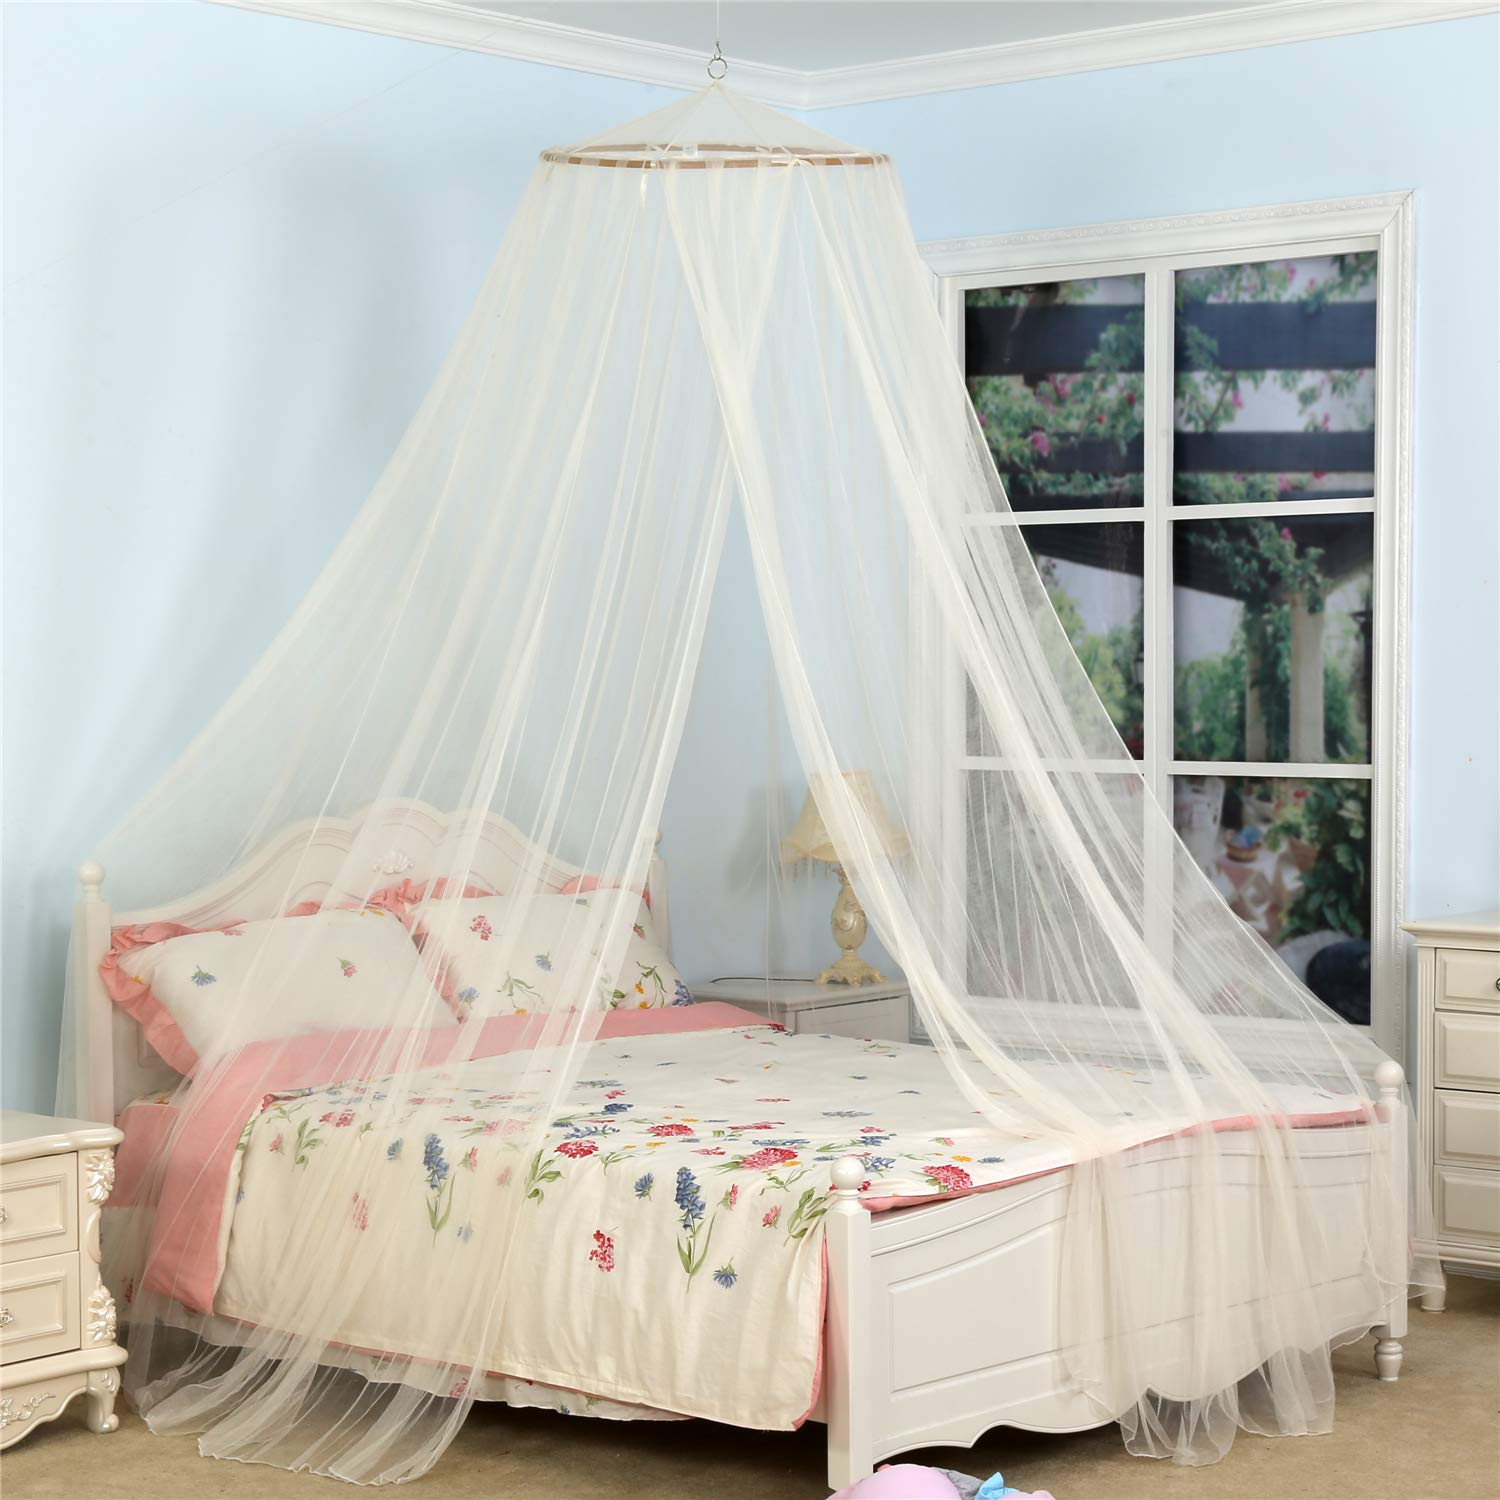 Amazoncom South To East King Size Bed Canopy, Ivory Color